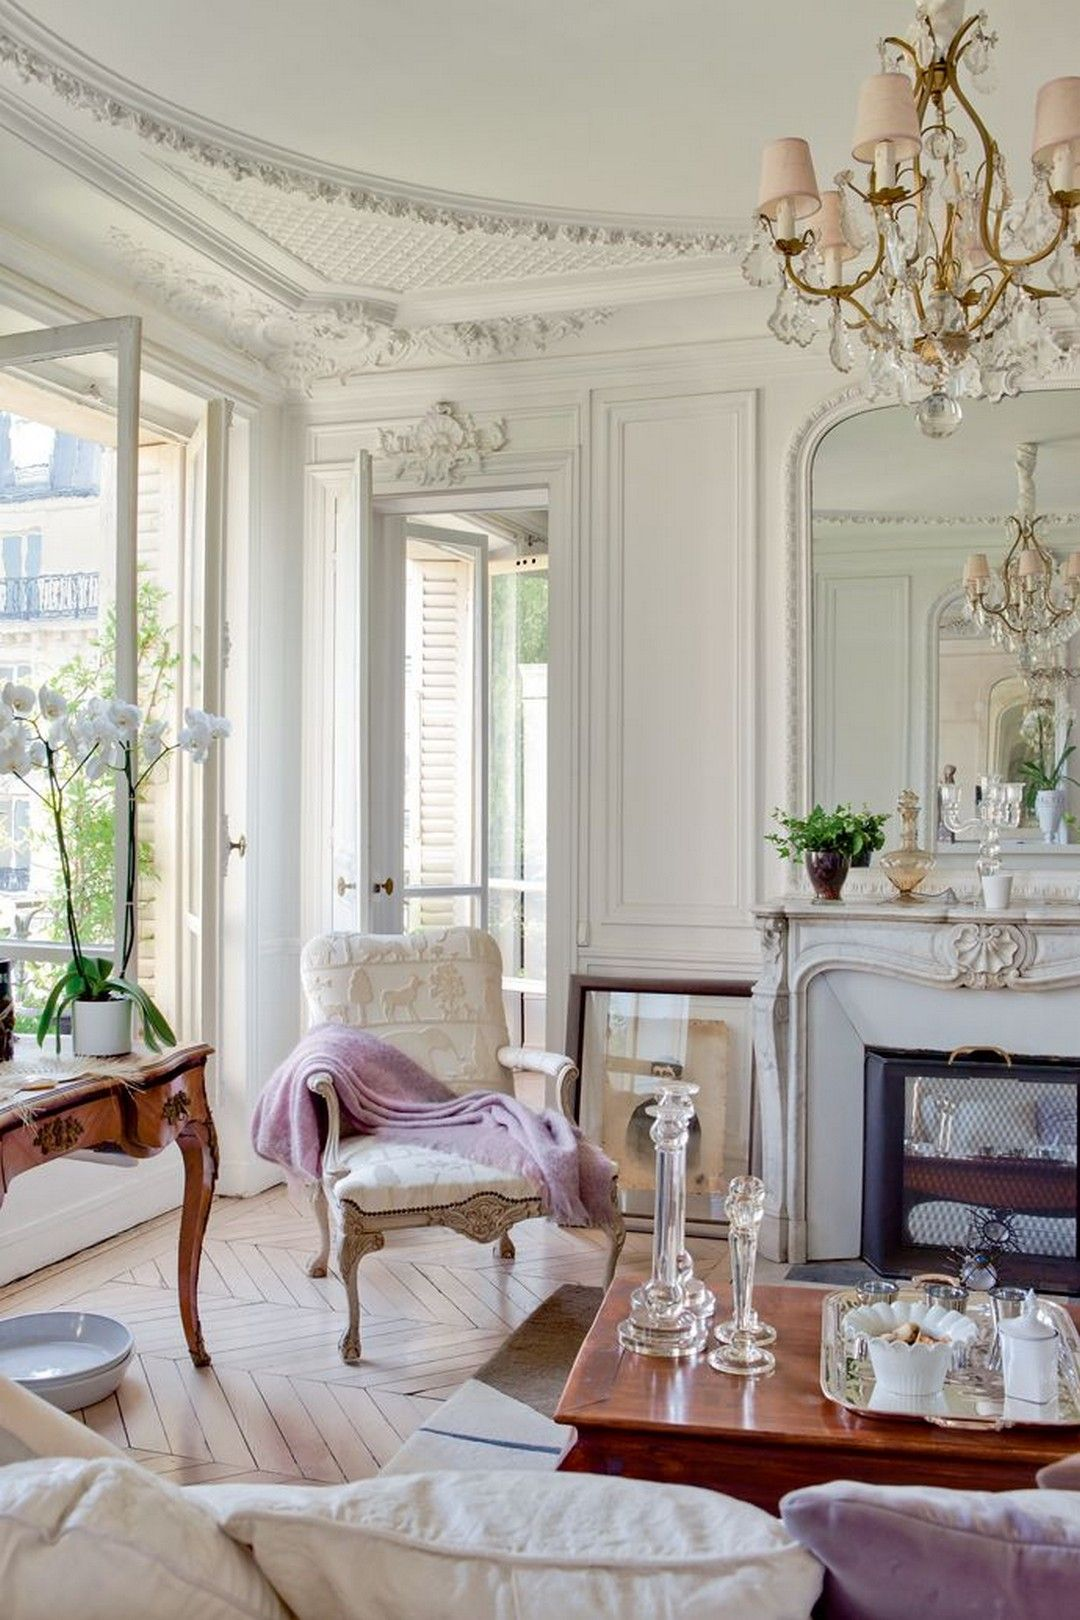 16 Stunning French Style Living Room Ideas | French style, Living ...